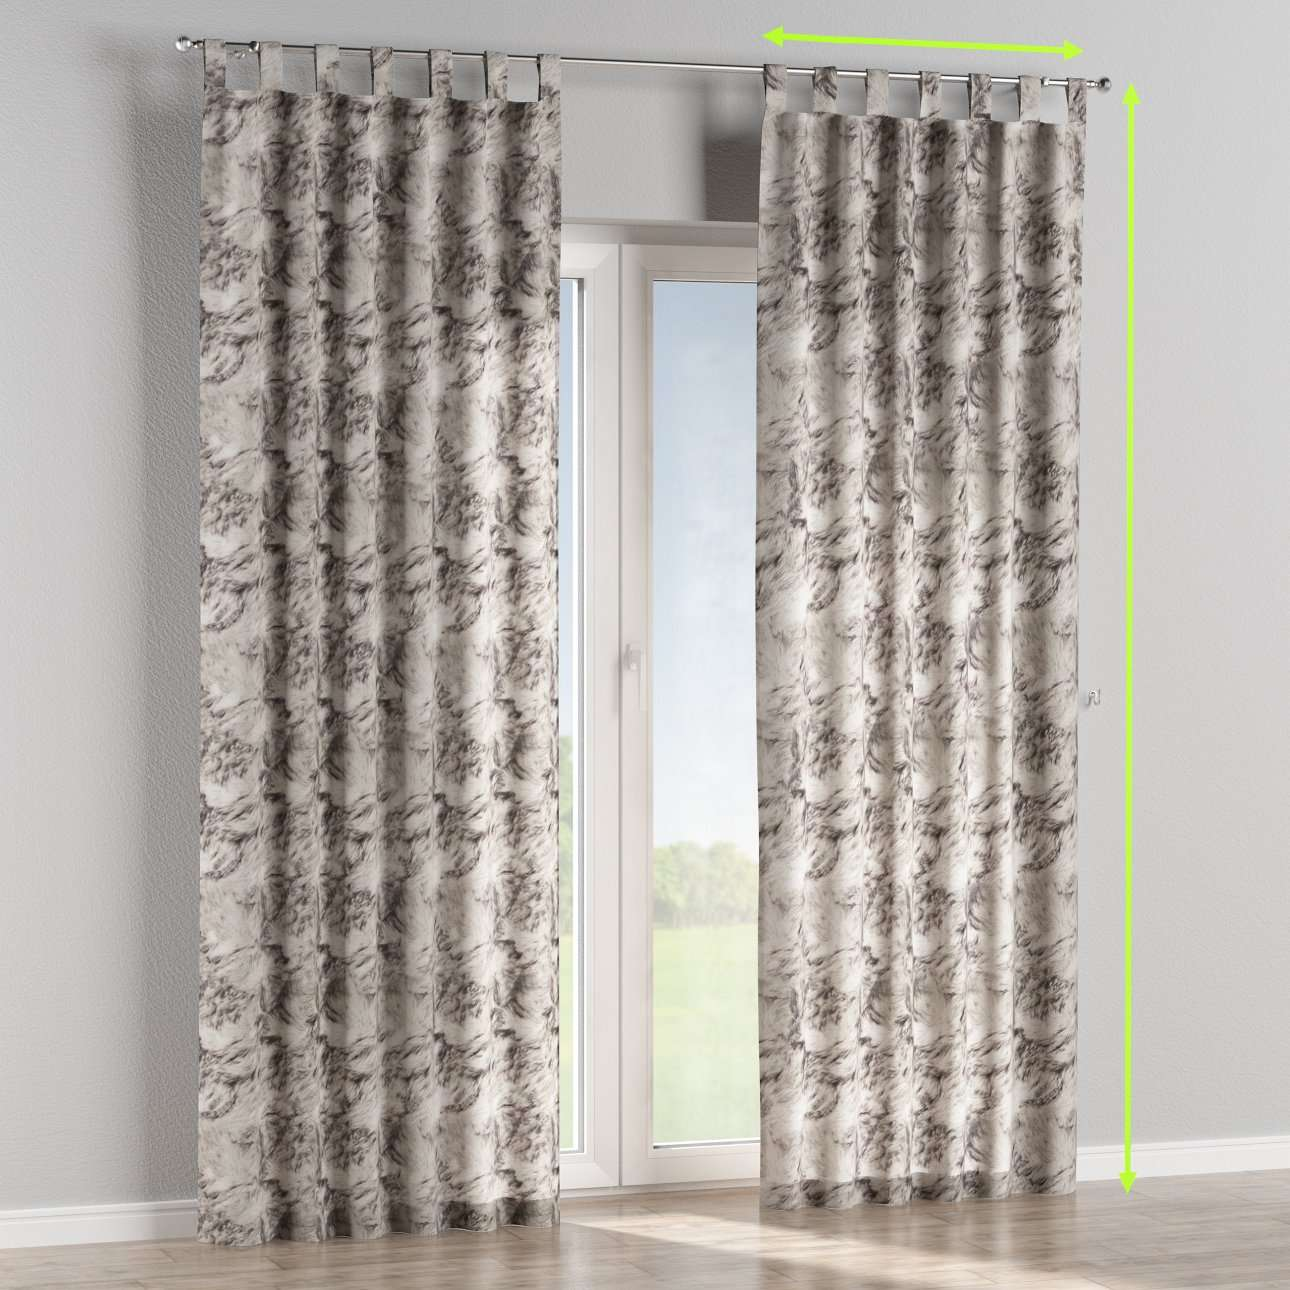 Tab top lined curtains in collection Norge, fabric: 140-82